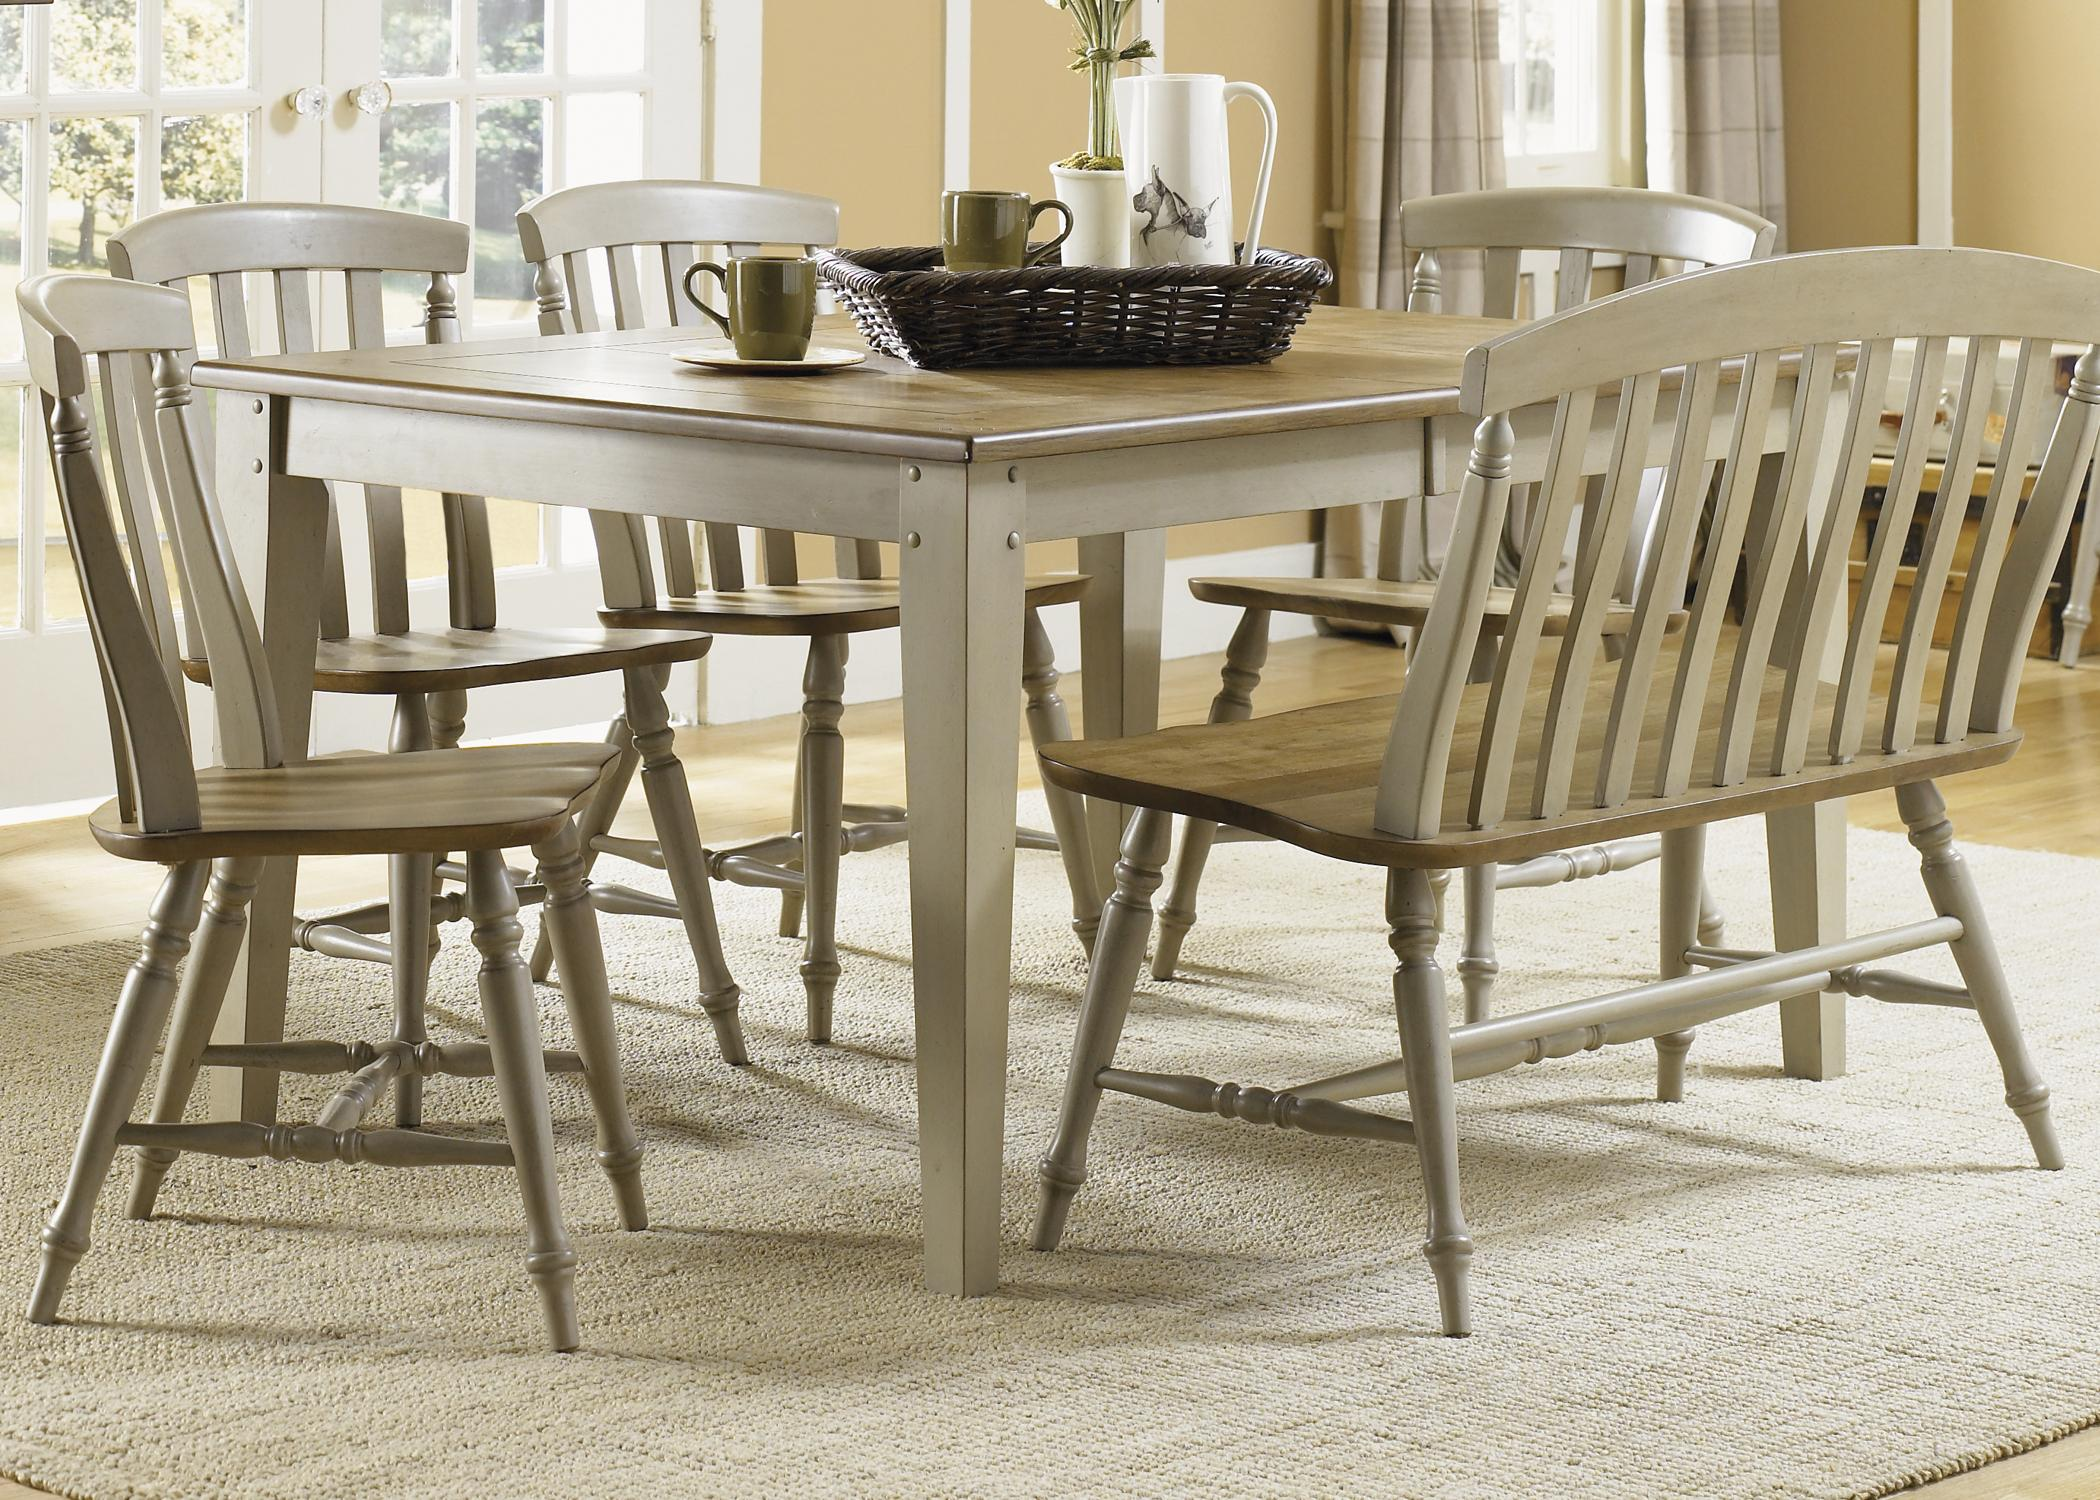 6 Piece Dining Table and Chairs Set & Six Piece Dining Table Set with Chairs and Bench by Liberty ...